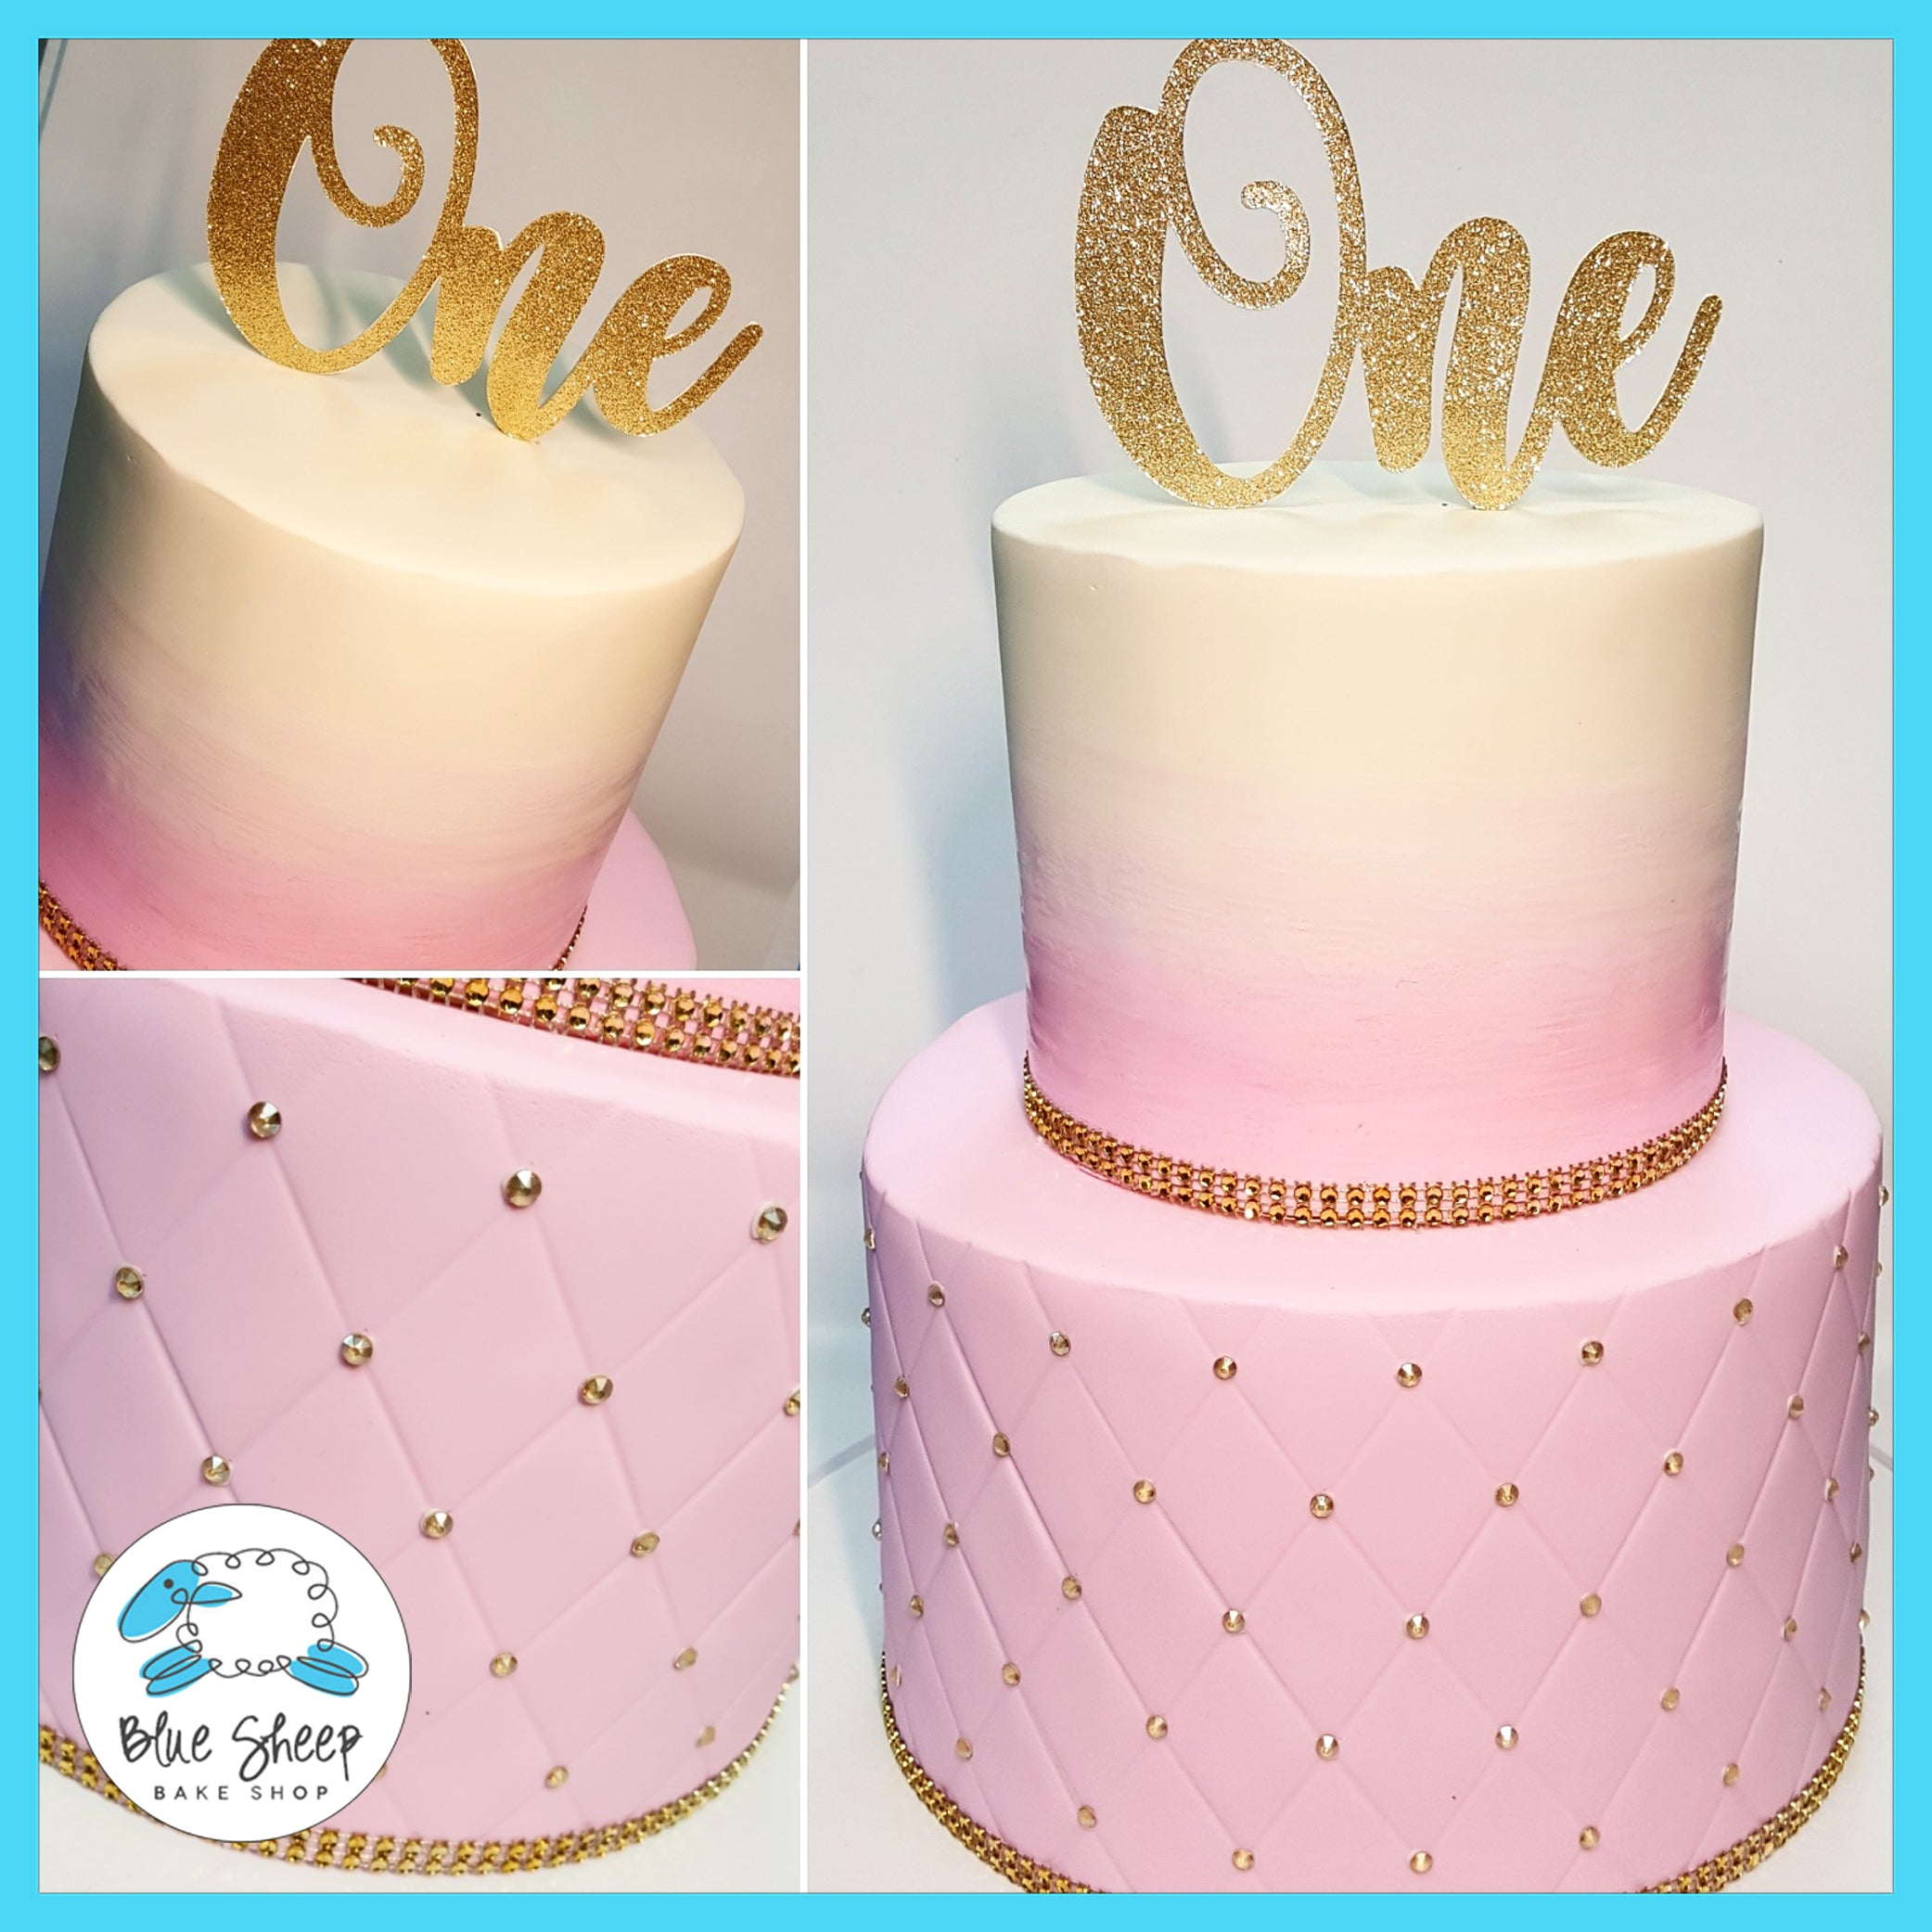 Pink Ombre Quilted Fondant 1st Birthday Cake Nj Blue Sheep Bake Shop